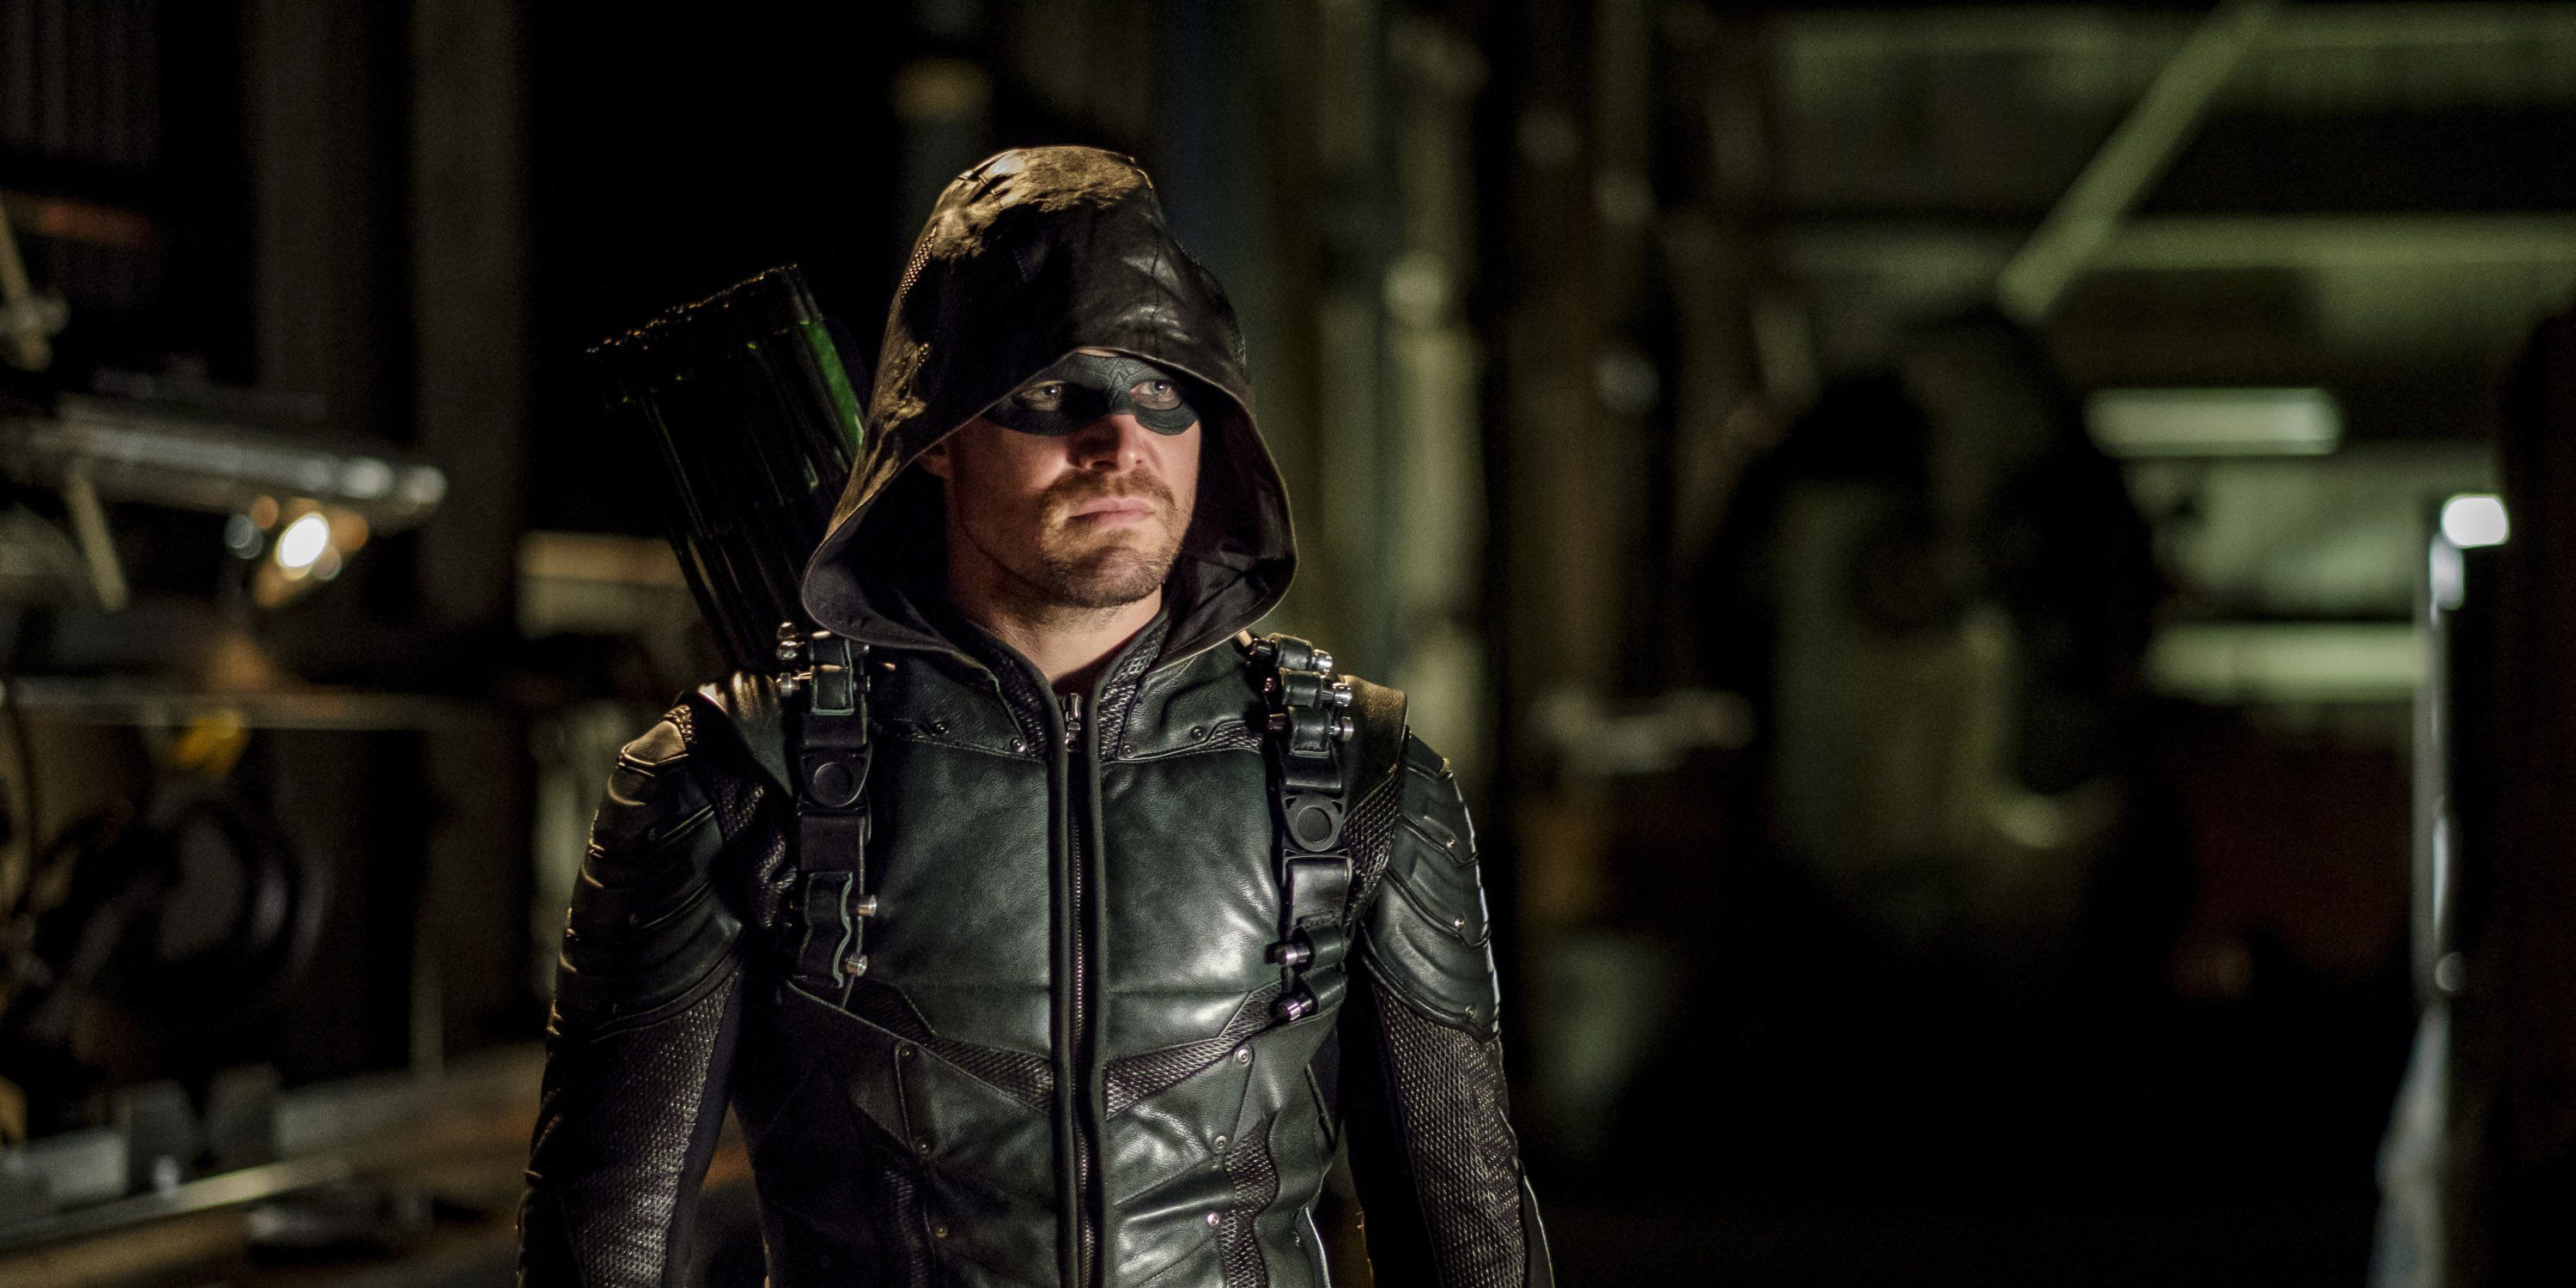 Stephen Amell, Arrow, Season 6, Episode 2